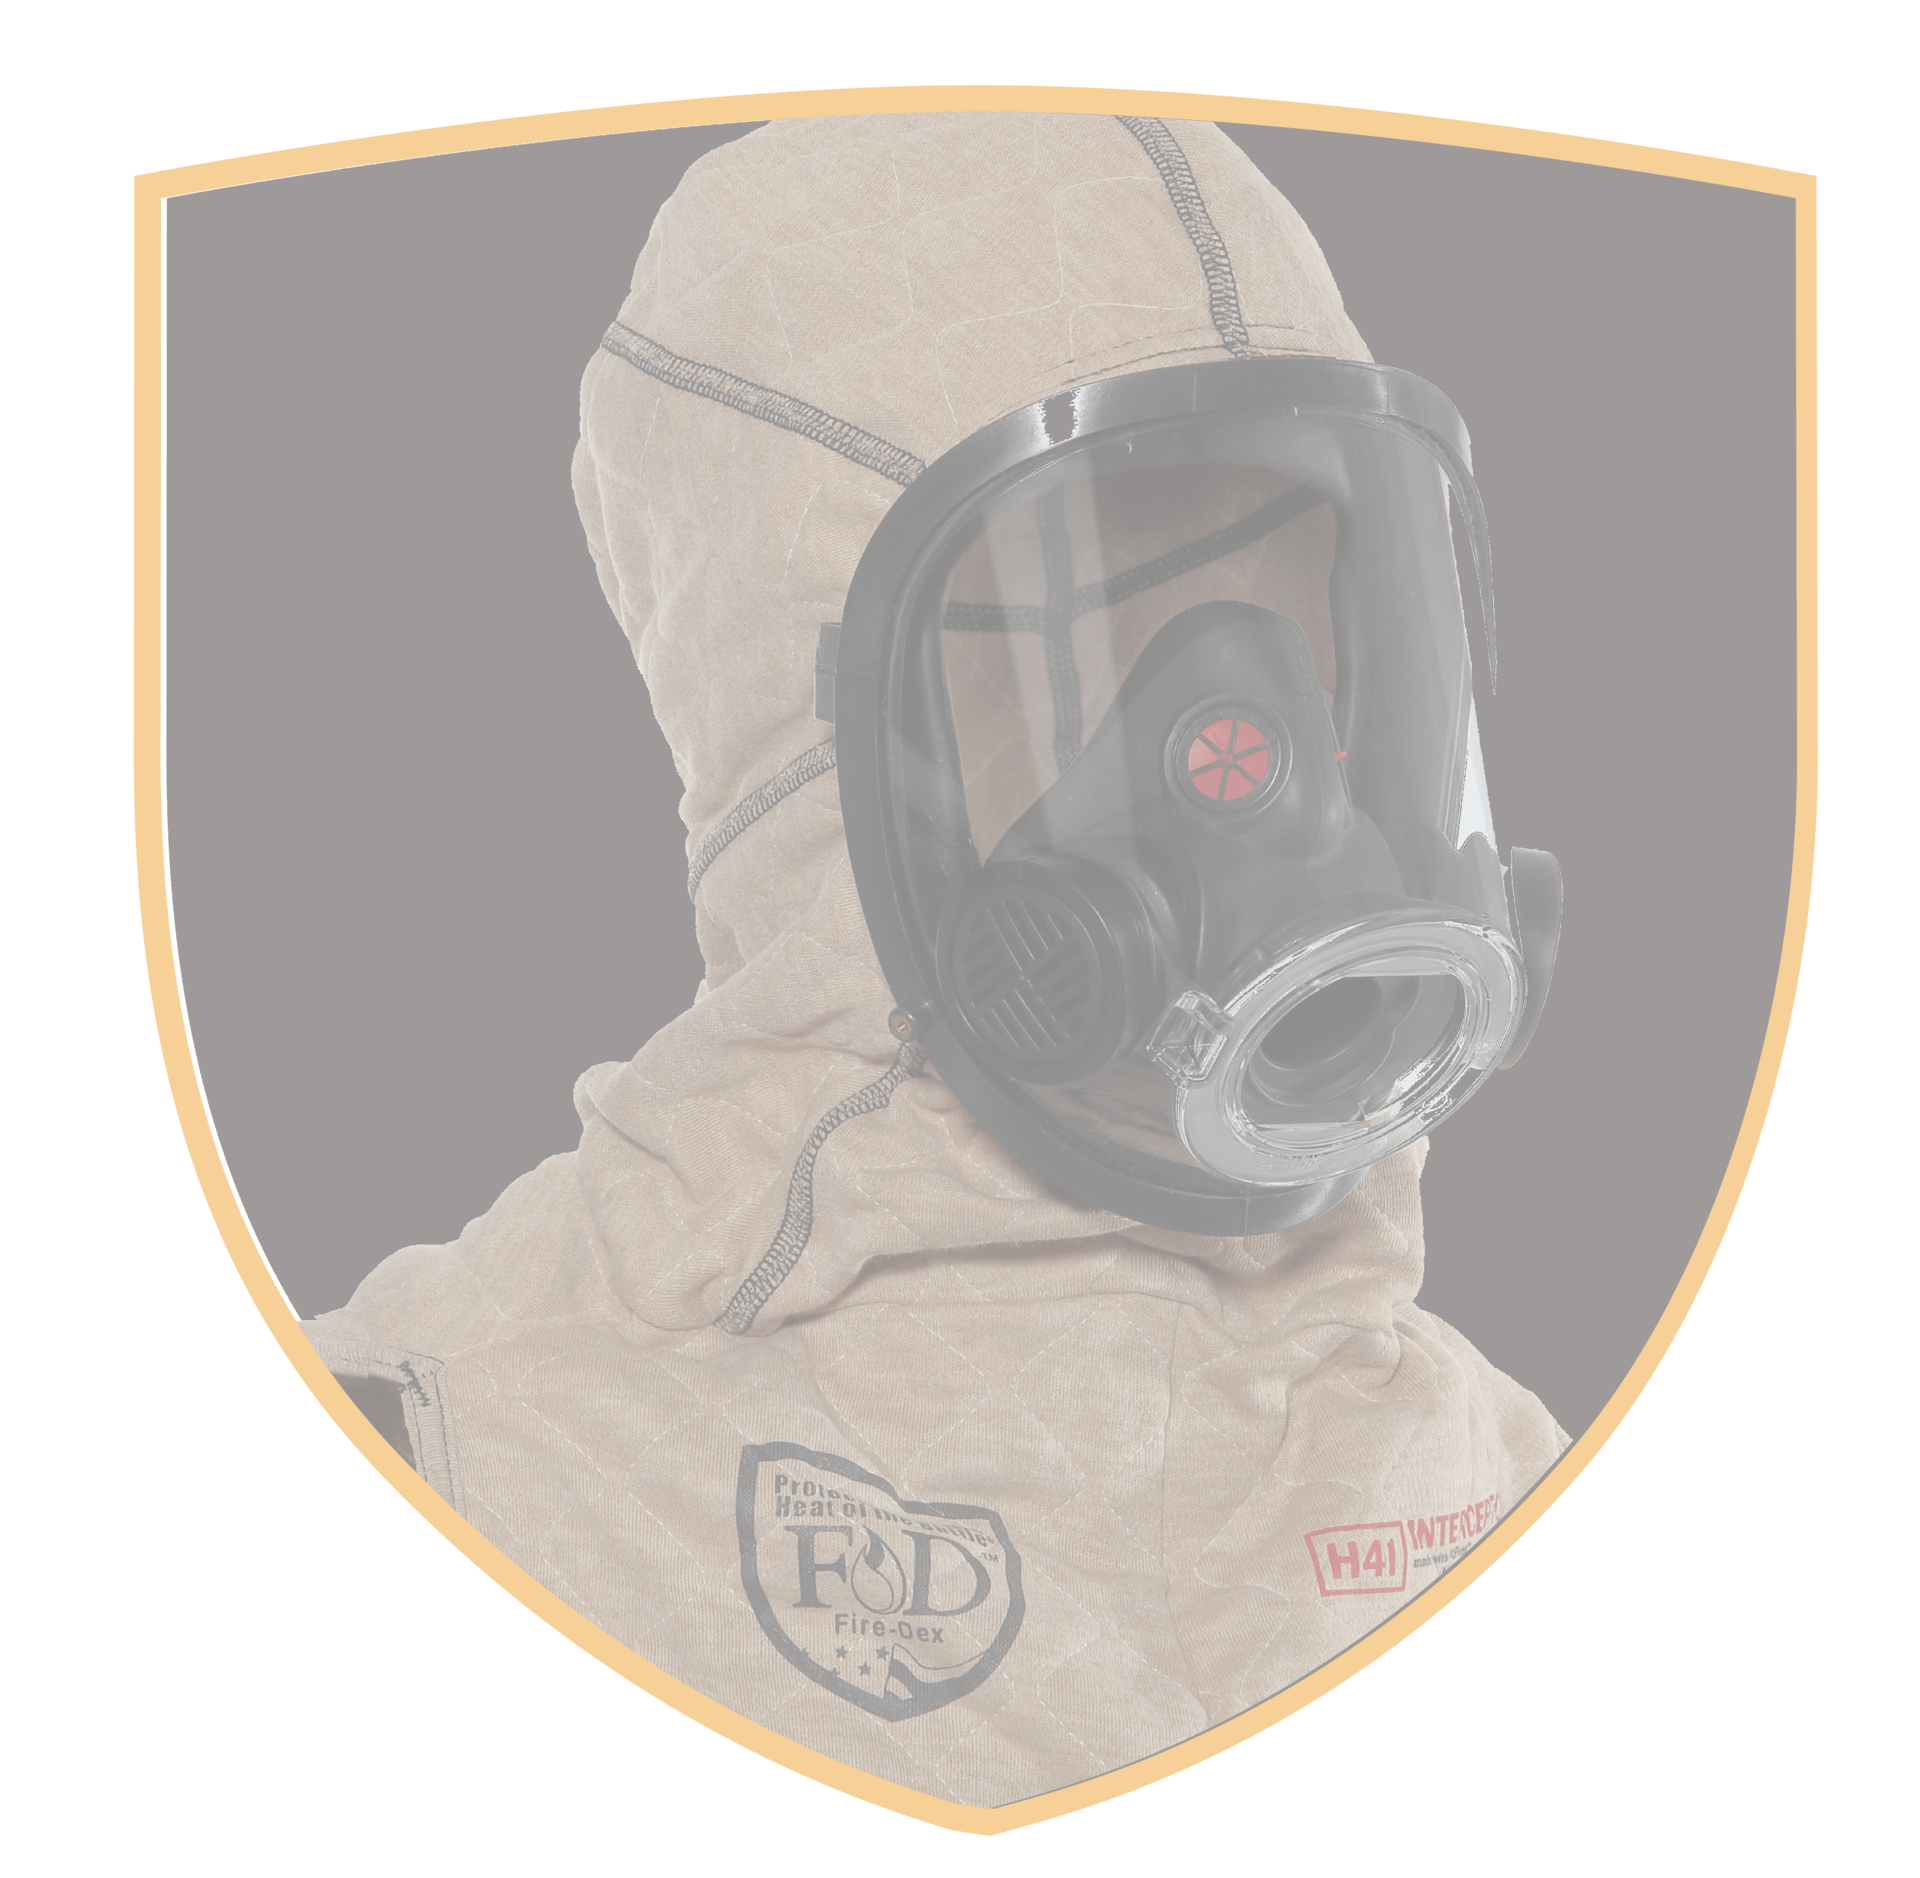 FD_InterceptorPackage_Shields_transparent-01-01